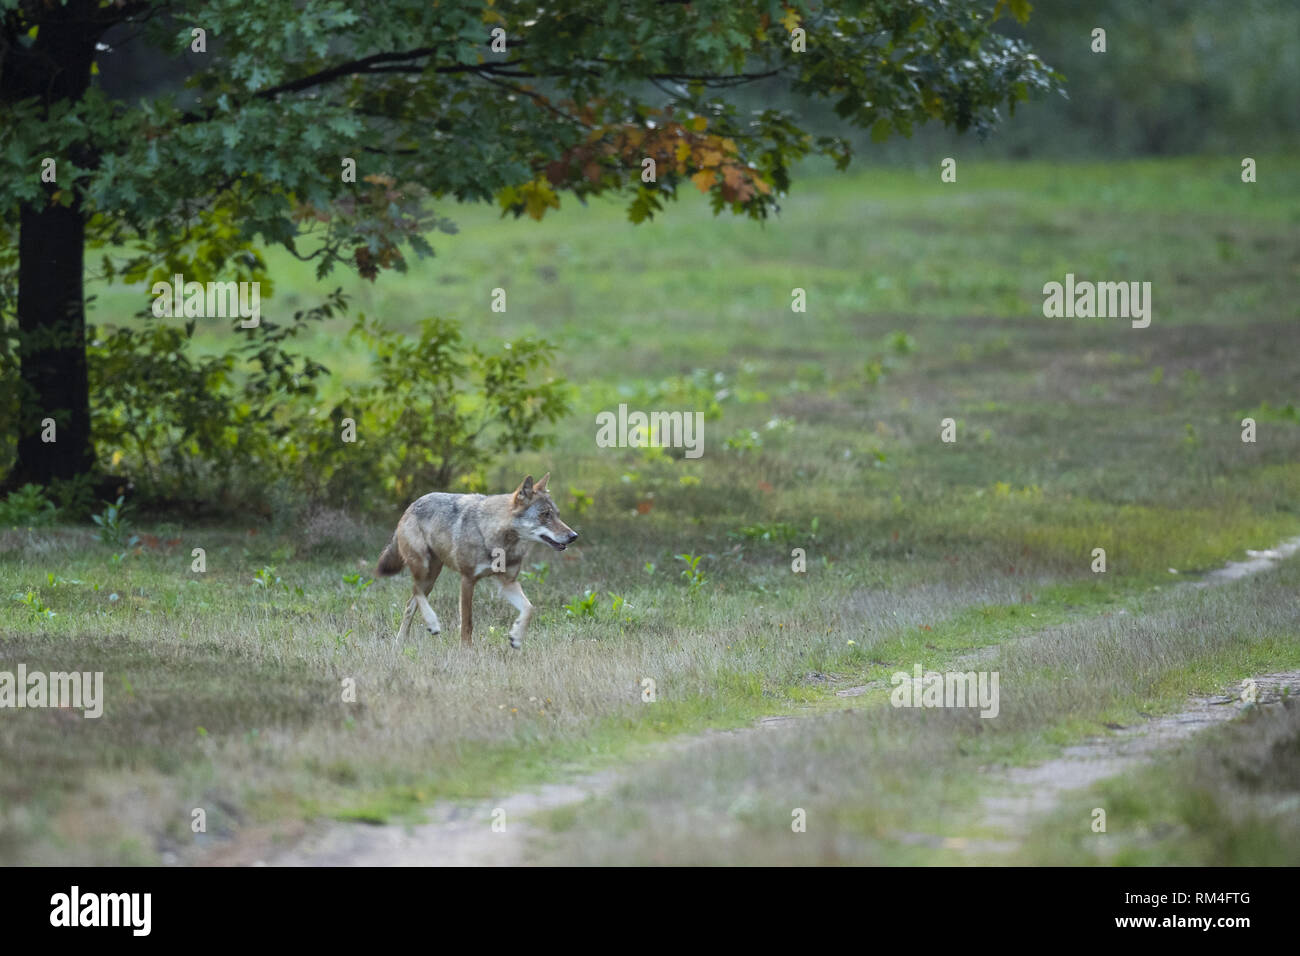 wolf (canis lupus) on a dirt road, soegel, lower saxony, germany Stock Photo